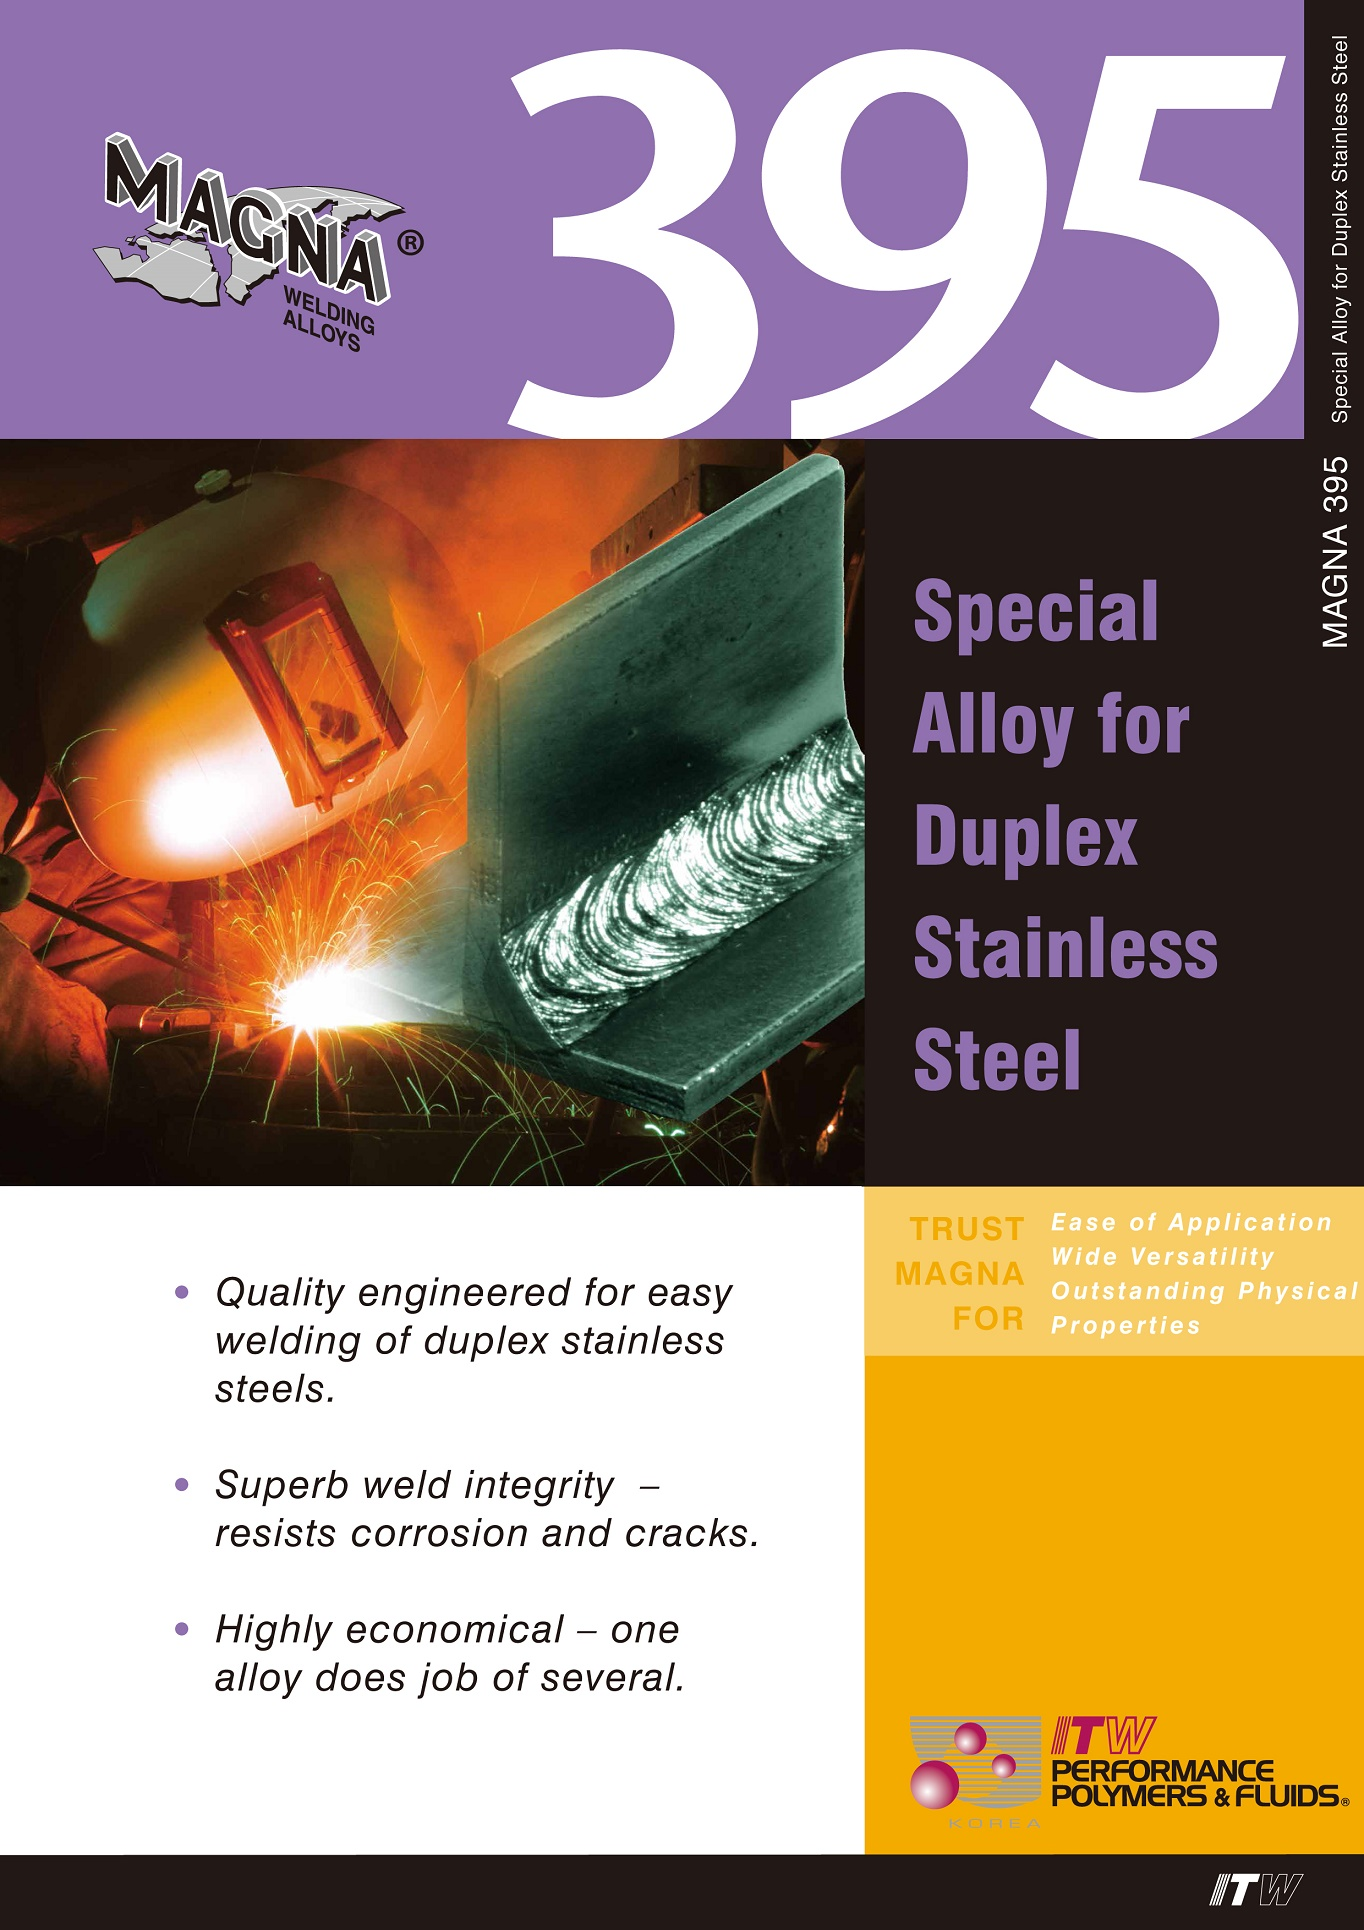 ARC WELDING-for stainless steel_395_eng_dm_160101